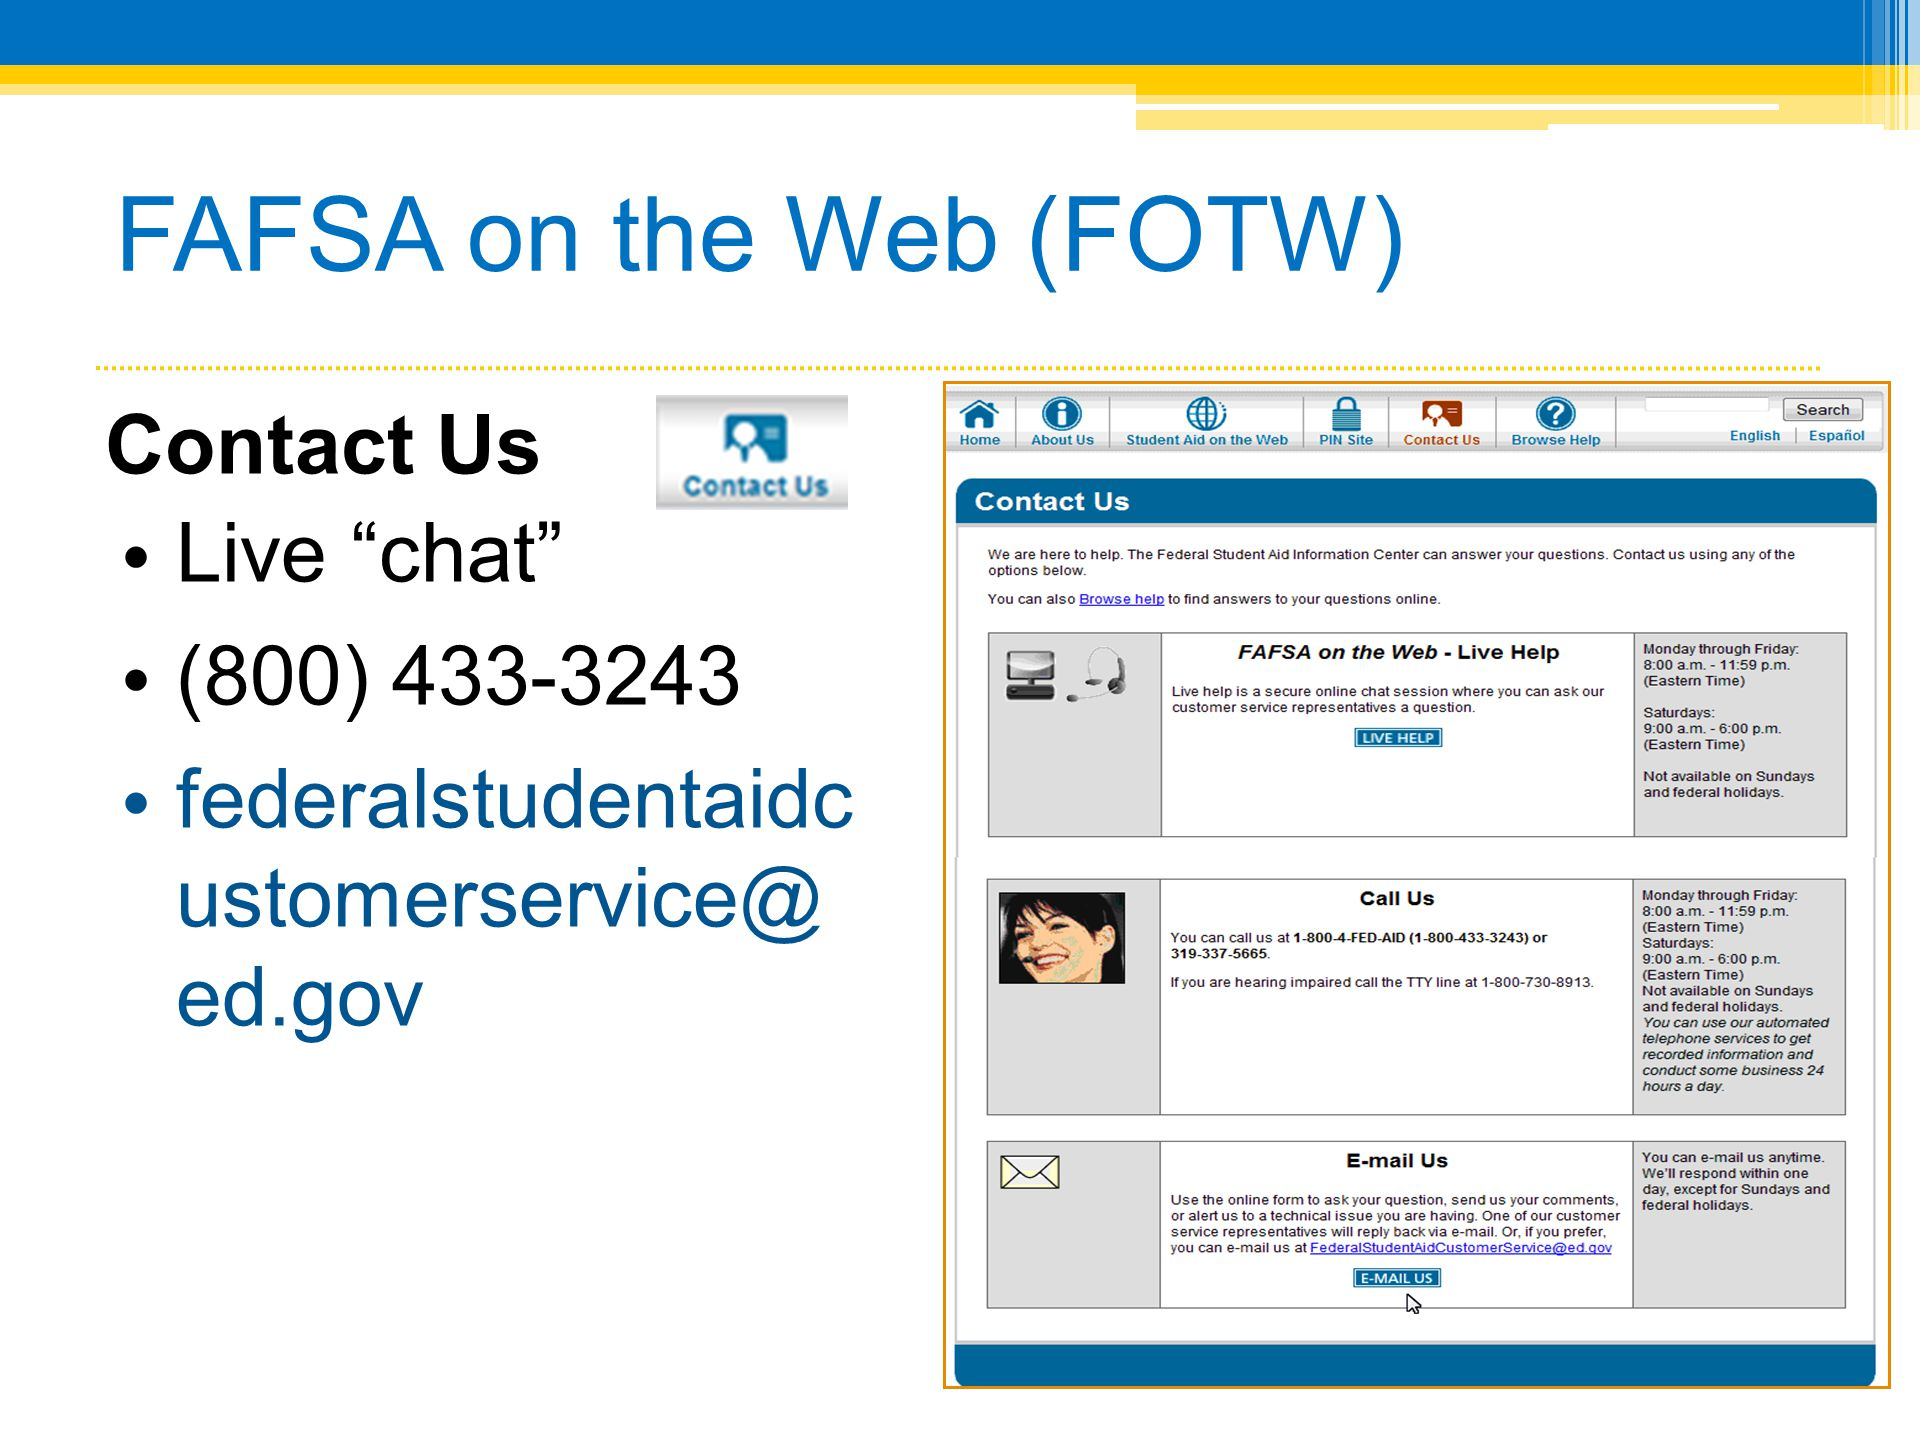 FAFSA on the Web (FOTW) Contact Us Live chat (800) 433-3243 federalstudentaidc ustomerservice@ ed.gov